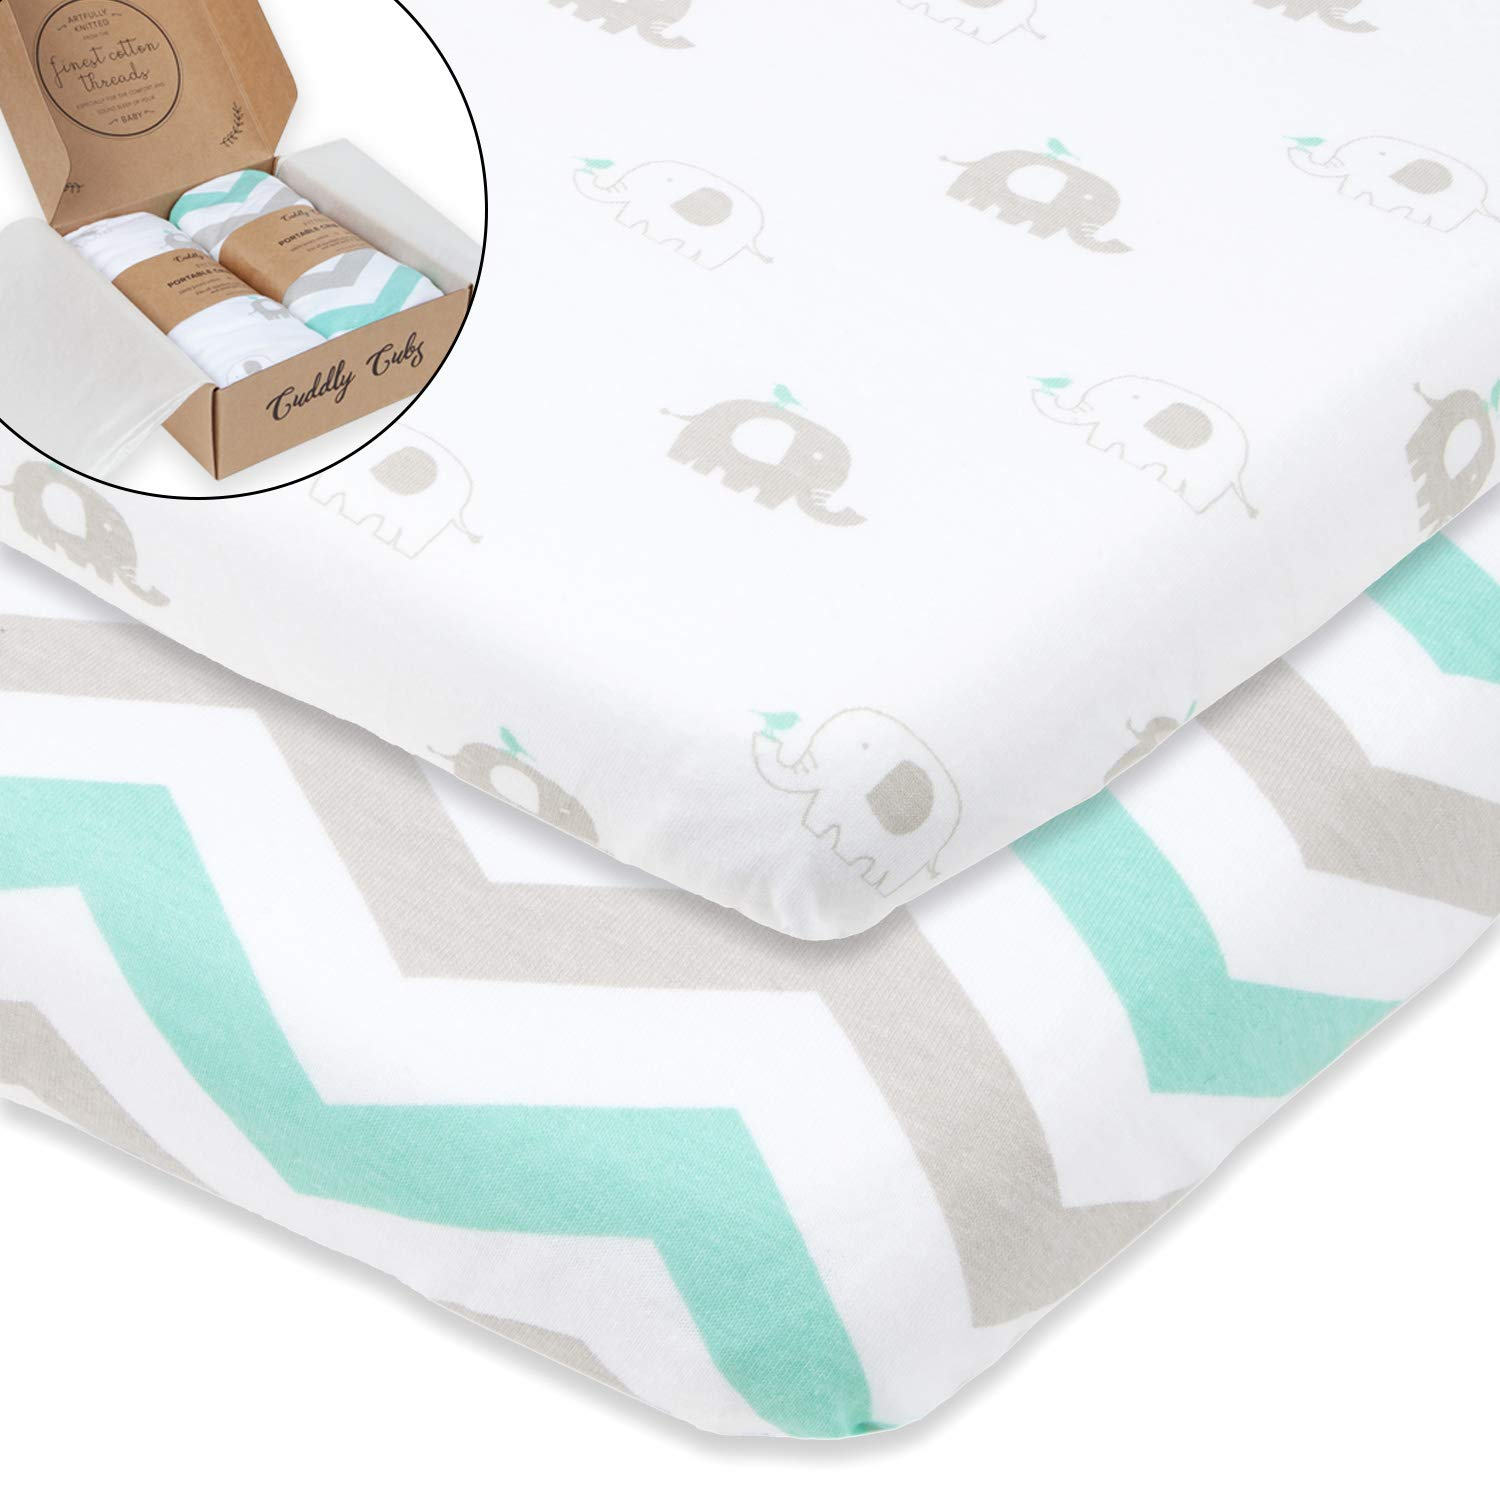 Bassinet Sheets Set 2 Pack for Boy & Girl by Cuddly Cubs | Soft & Breathable 100% Jersey Cotton | Fitted Elastic Design | Mint & Grey Chevron & Elephants | Fits Oval, Halo, Chicco Lullago, Arms Reach